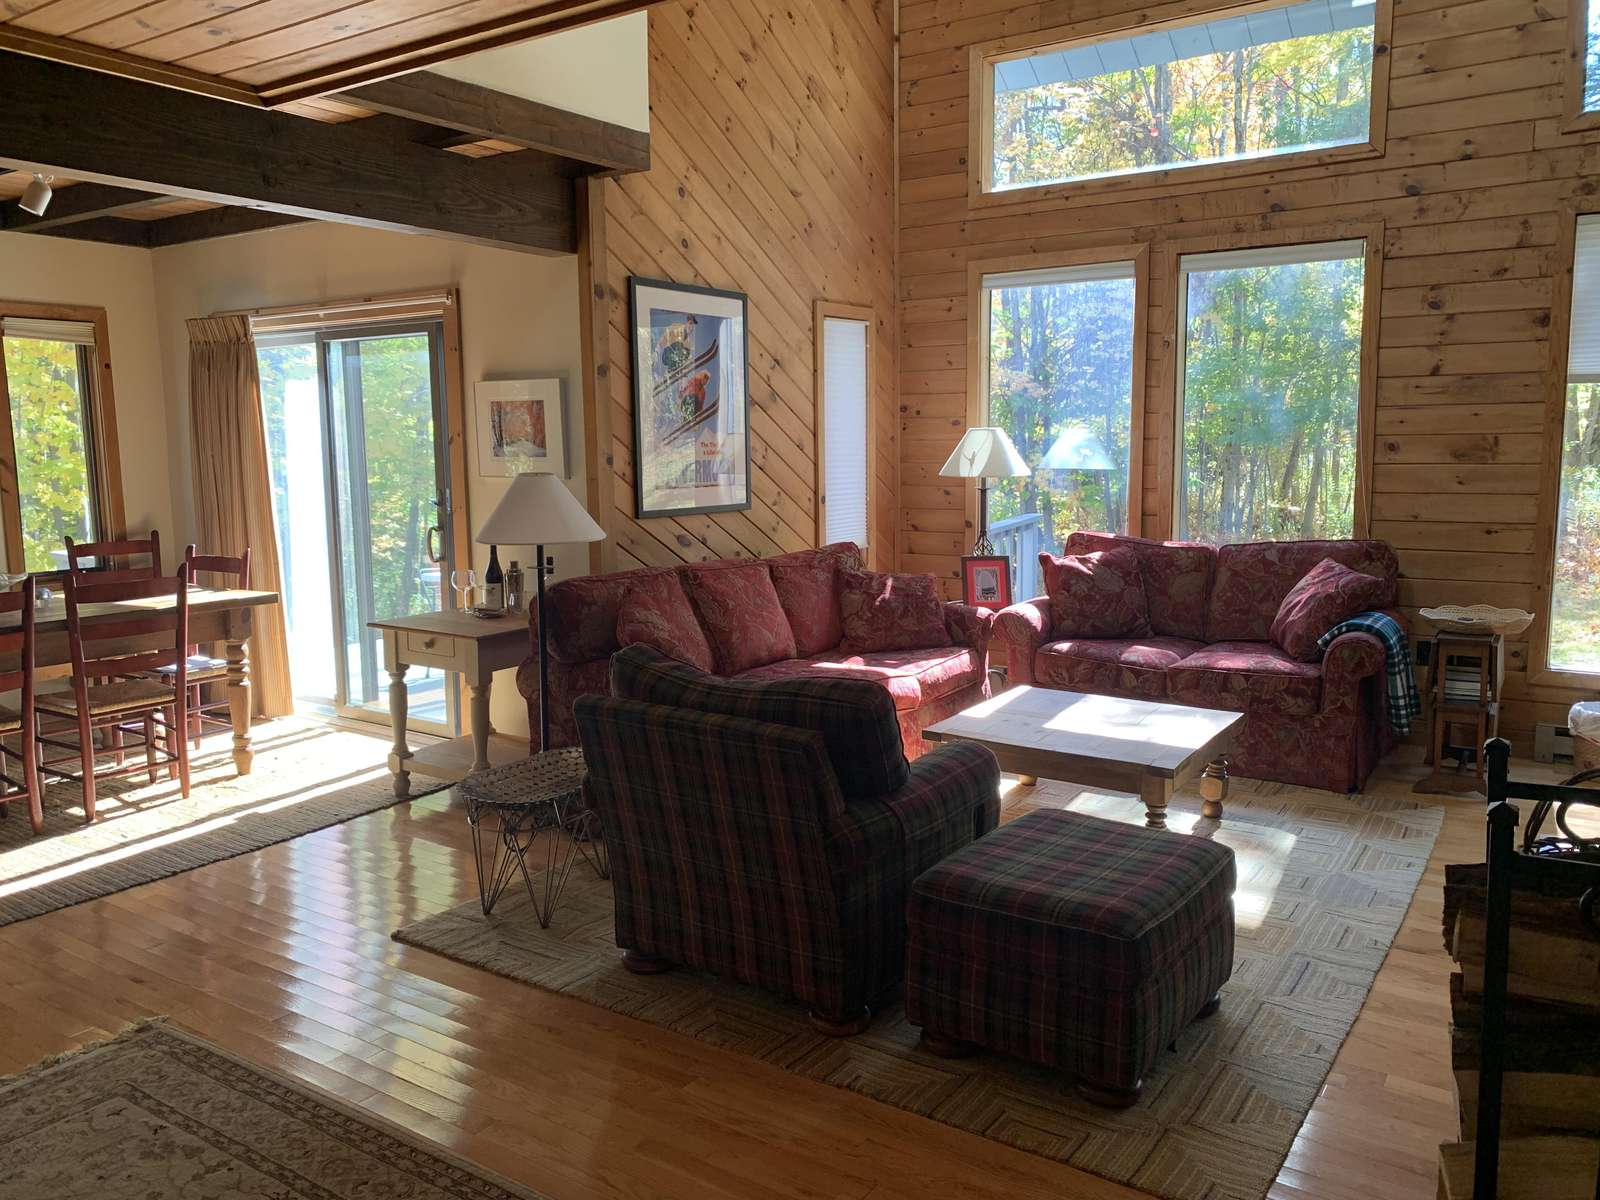 Walk in to comfort and sunlight - property